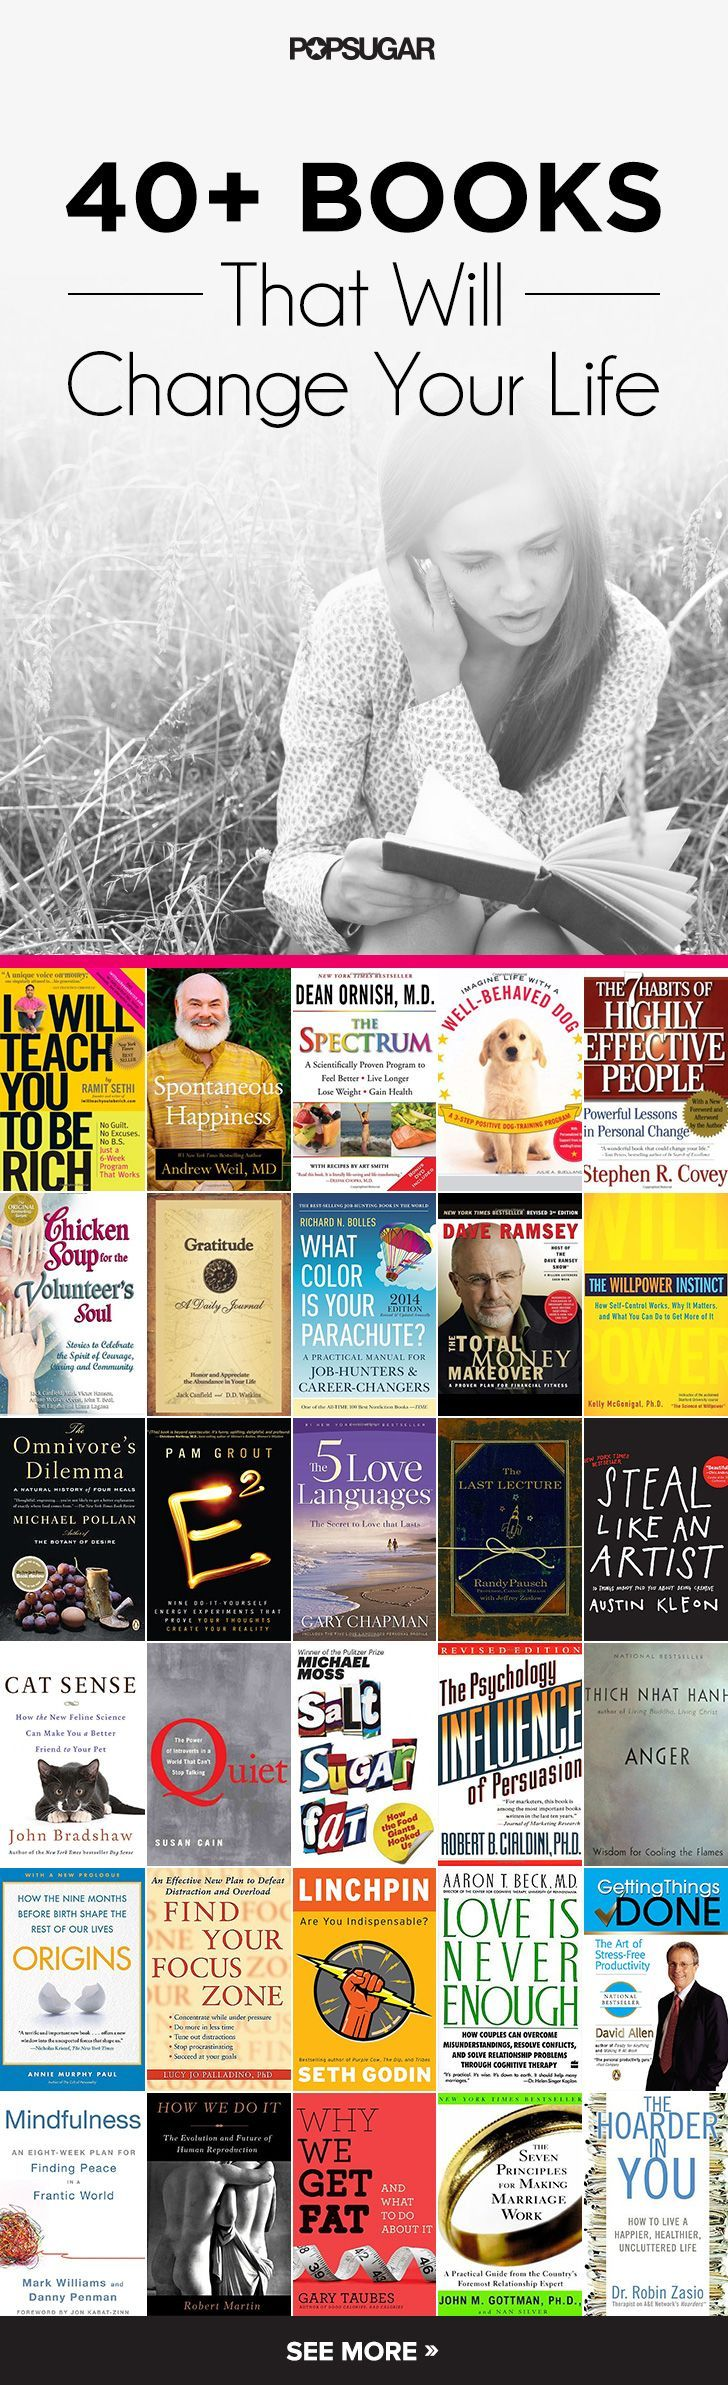 Knowledge is king. The first step to creating change in your life is to know what you're doing wrong or why you need to change. I've picked out over 40 books that will better your life in a dramatic way. Whether it's figuring out how to get out of debt, learning how to be happier, or trying to find ways to get a job, reading just one of these books this year is guaranteed to change your life for good.